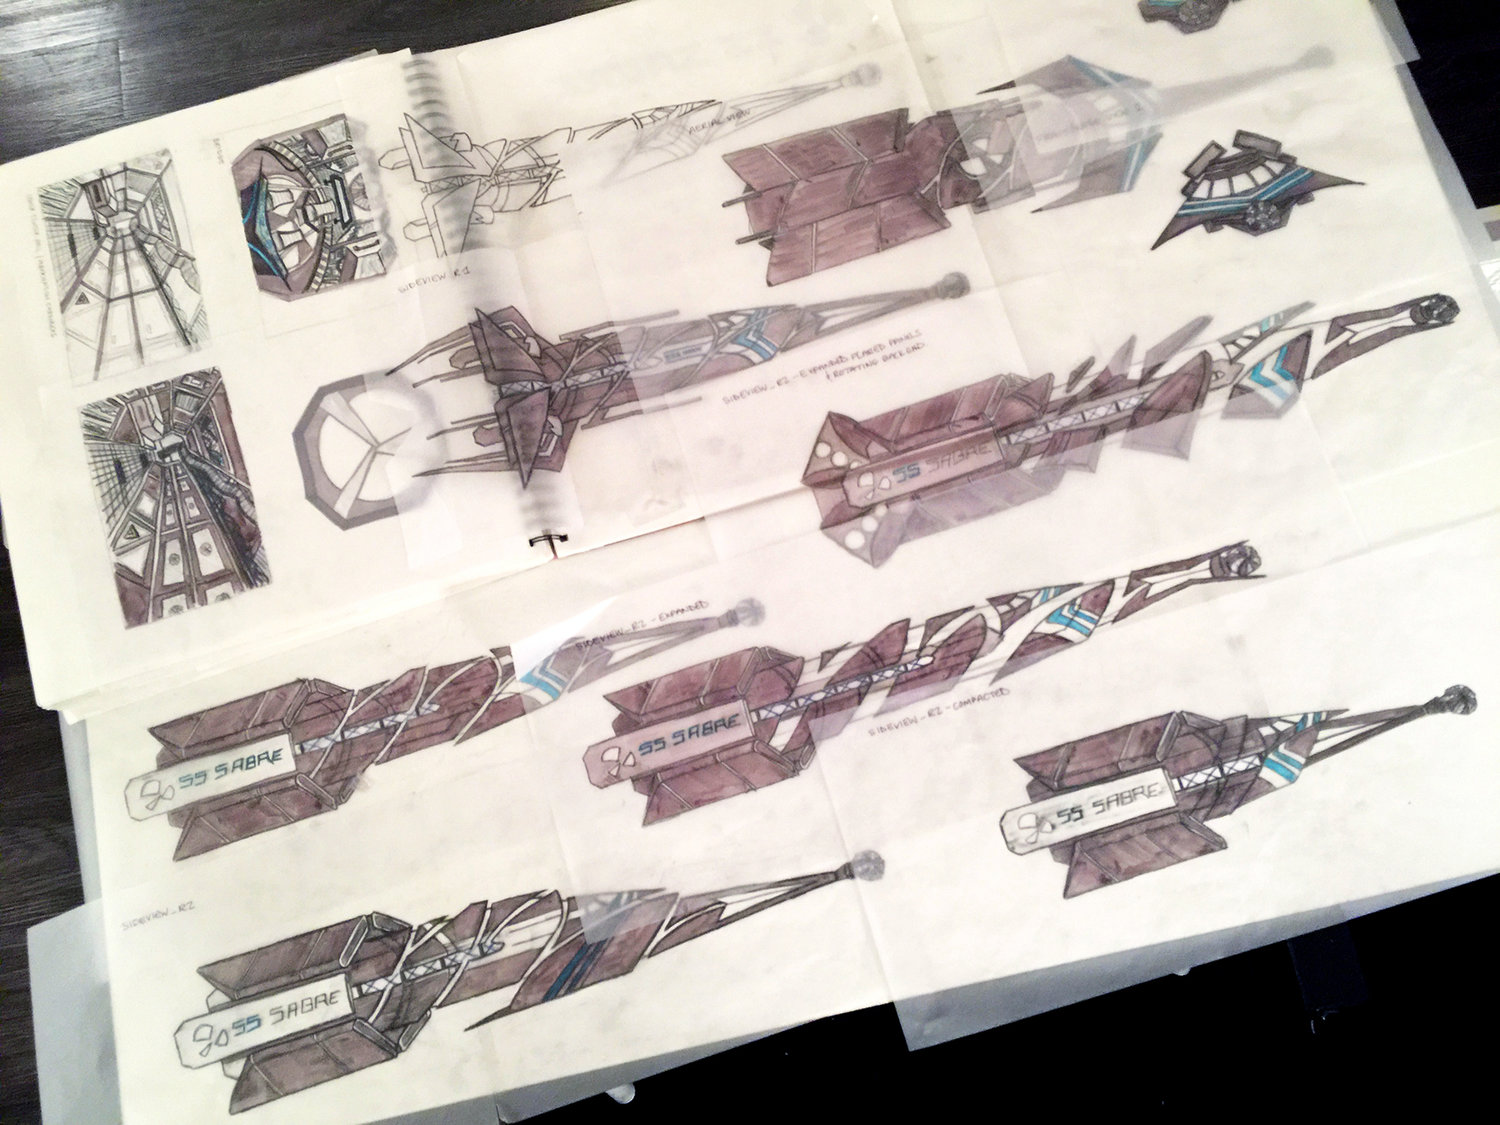 Shadows - Feature Film - Concept Drawings for Spaceship Set Design